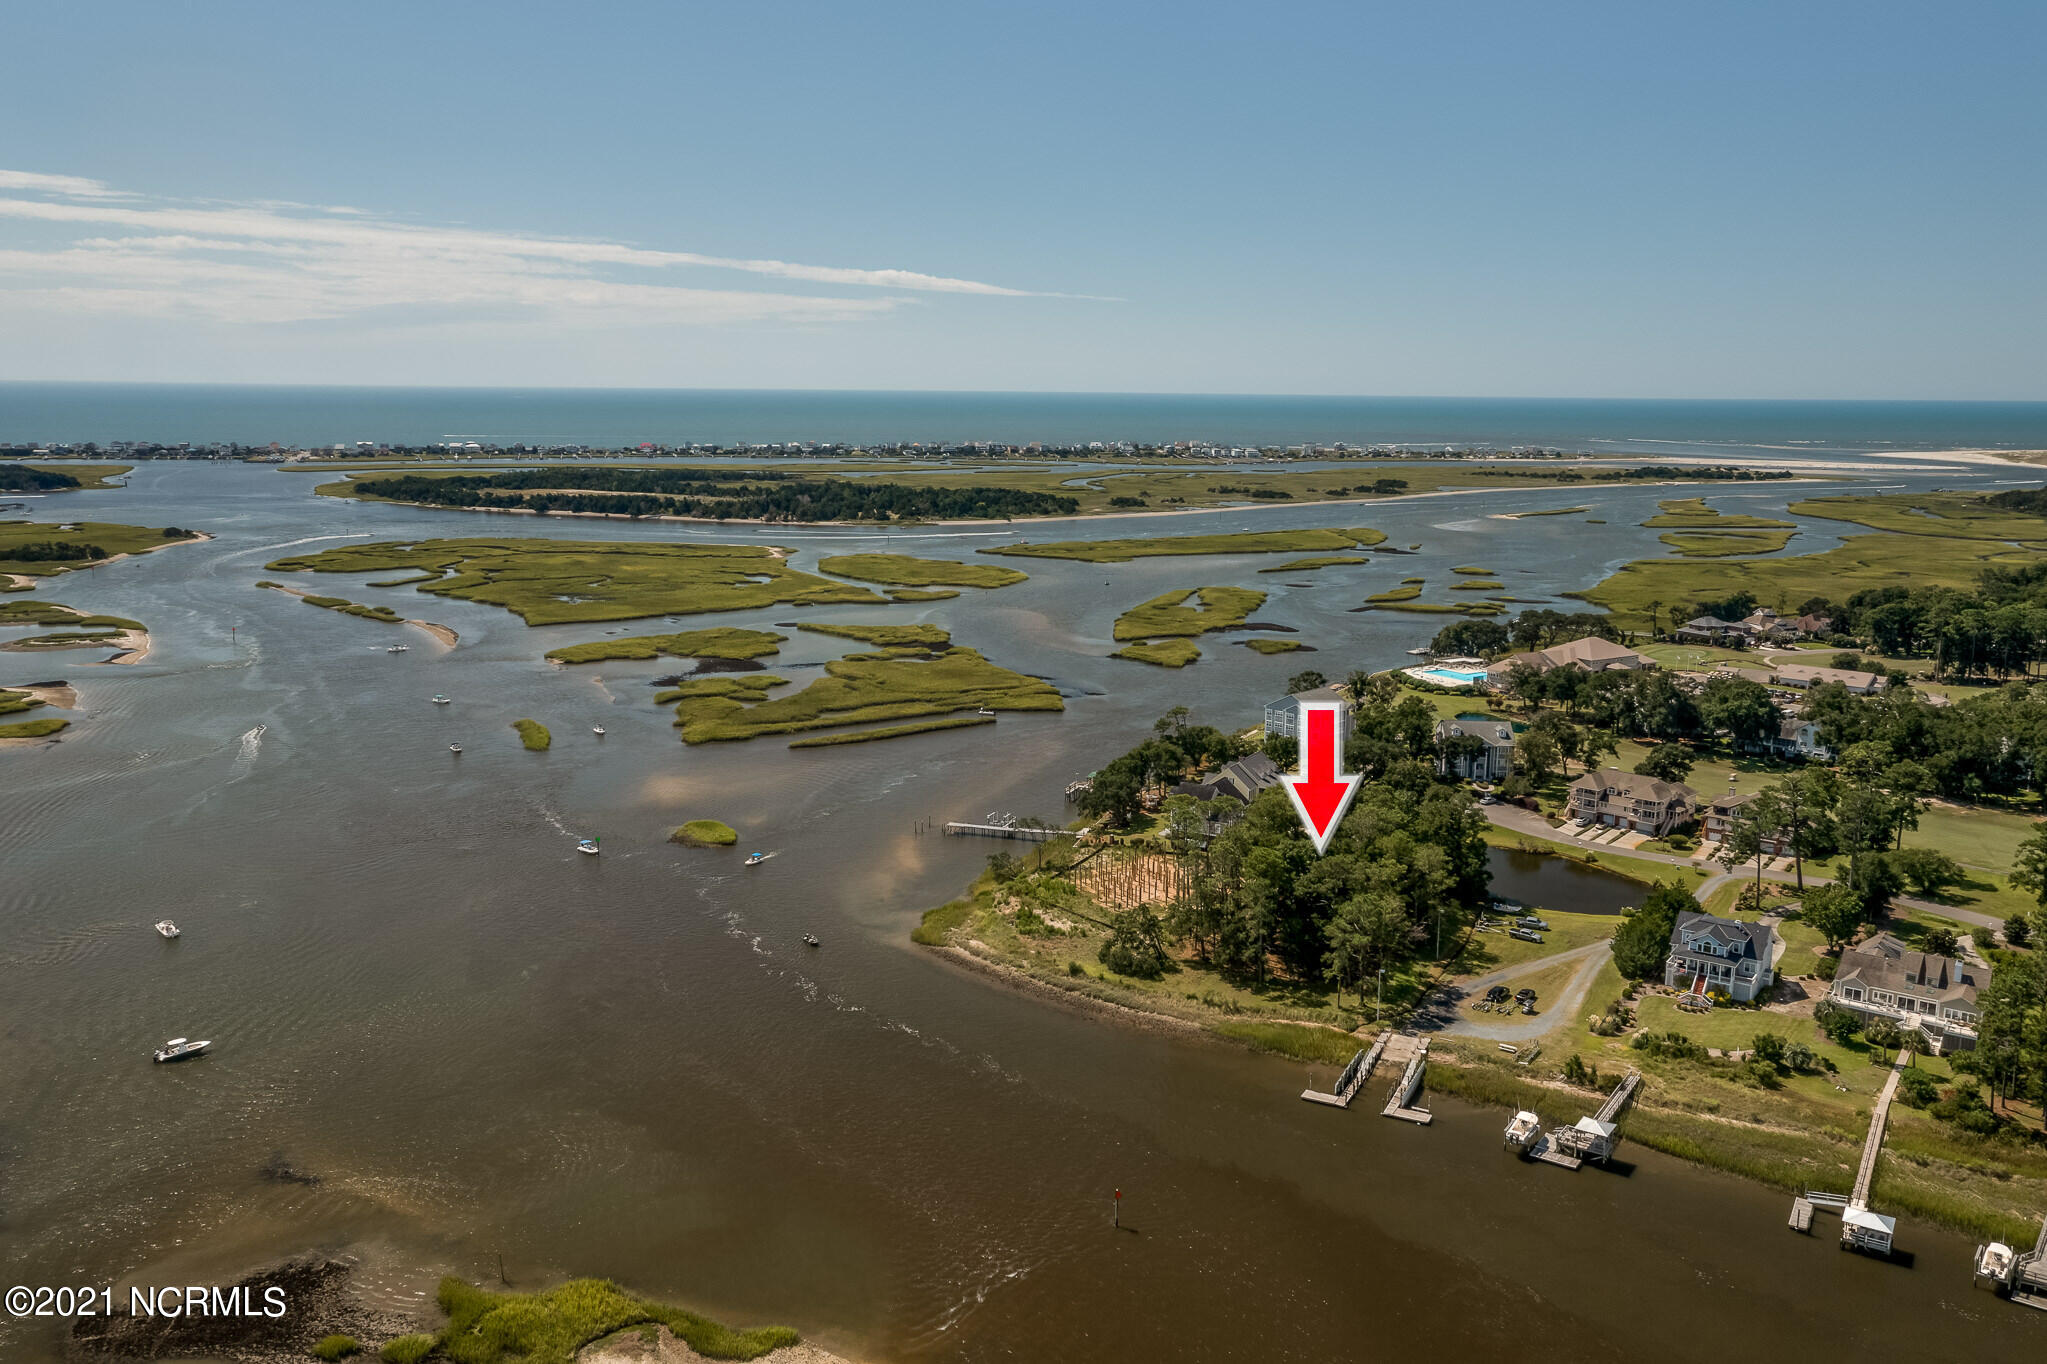 Prettiest waterfront deep water highly elevated lot in Lockwood Folly golf course plantation, .59 of an acre. 4 bedroom new septic permit on hand.   Walking distance to. golf course, pool and restaurant. will sell fast.  There are not many fantastic Holden Beach Waterfront homesites like this anywhere. This lot highly elevated in AE flood zone with spectacular waterfront, marsh front, sunset views of widest part of Lockwood Folly saltwater River where it meets the Intracoastal Waterway. Location is PREMIUM and will be the PERFECT homesite to build your waterfront home with waterviews from every window. small Lake in back yard. Next door to PlantaBoat Ramp, and so the connecting Bulkhead for Lockwood Folly is always maintained.  With CAMA permit can build a concrete pier. and boat lift. leave your lot by boat and you are in the Inlet and fishing the Atlantic for the big ones within 20 minutes. Bring all the fish back to your dock and clean them at your cleaning station on your pier. The crabs will love you. Look at all Drone footage to appreciate location and views. New Clubhouse. This is Sexy property and the pick of the litter. All Offers must have 5,000 Due Diligence to Seller.  Call for copy of septic permit. all homes in Lockwood Folly Plantation are custom built